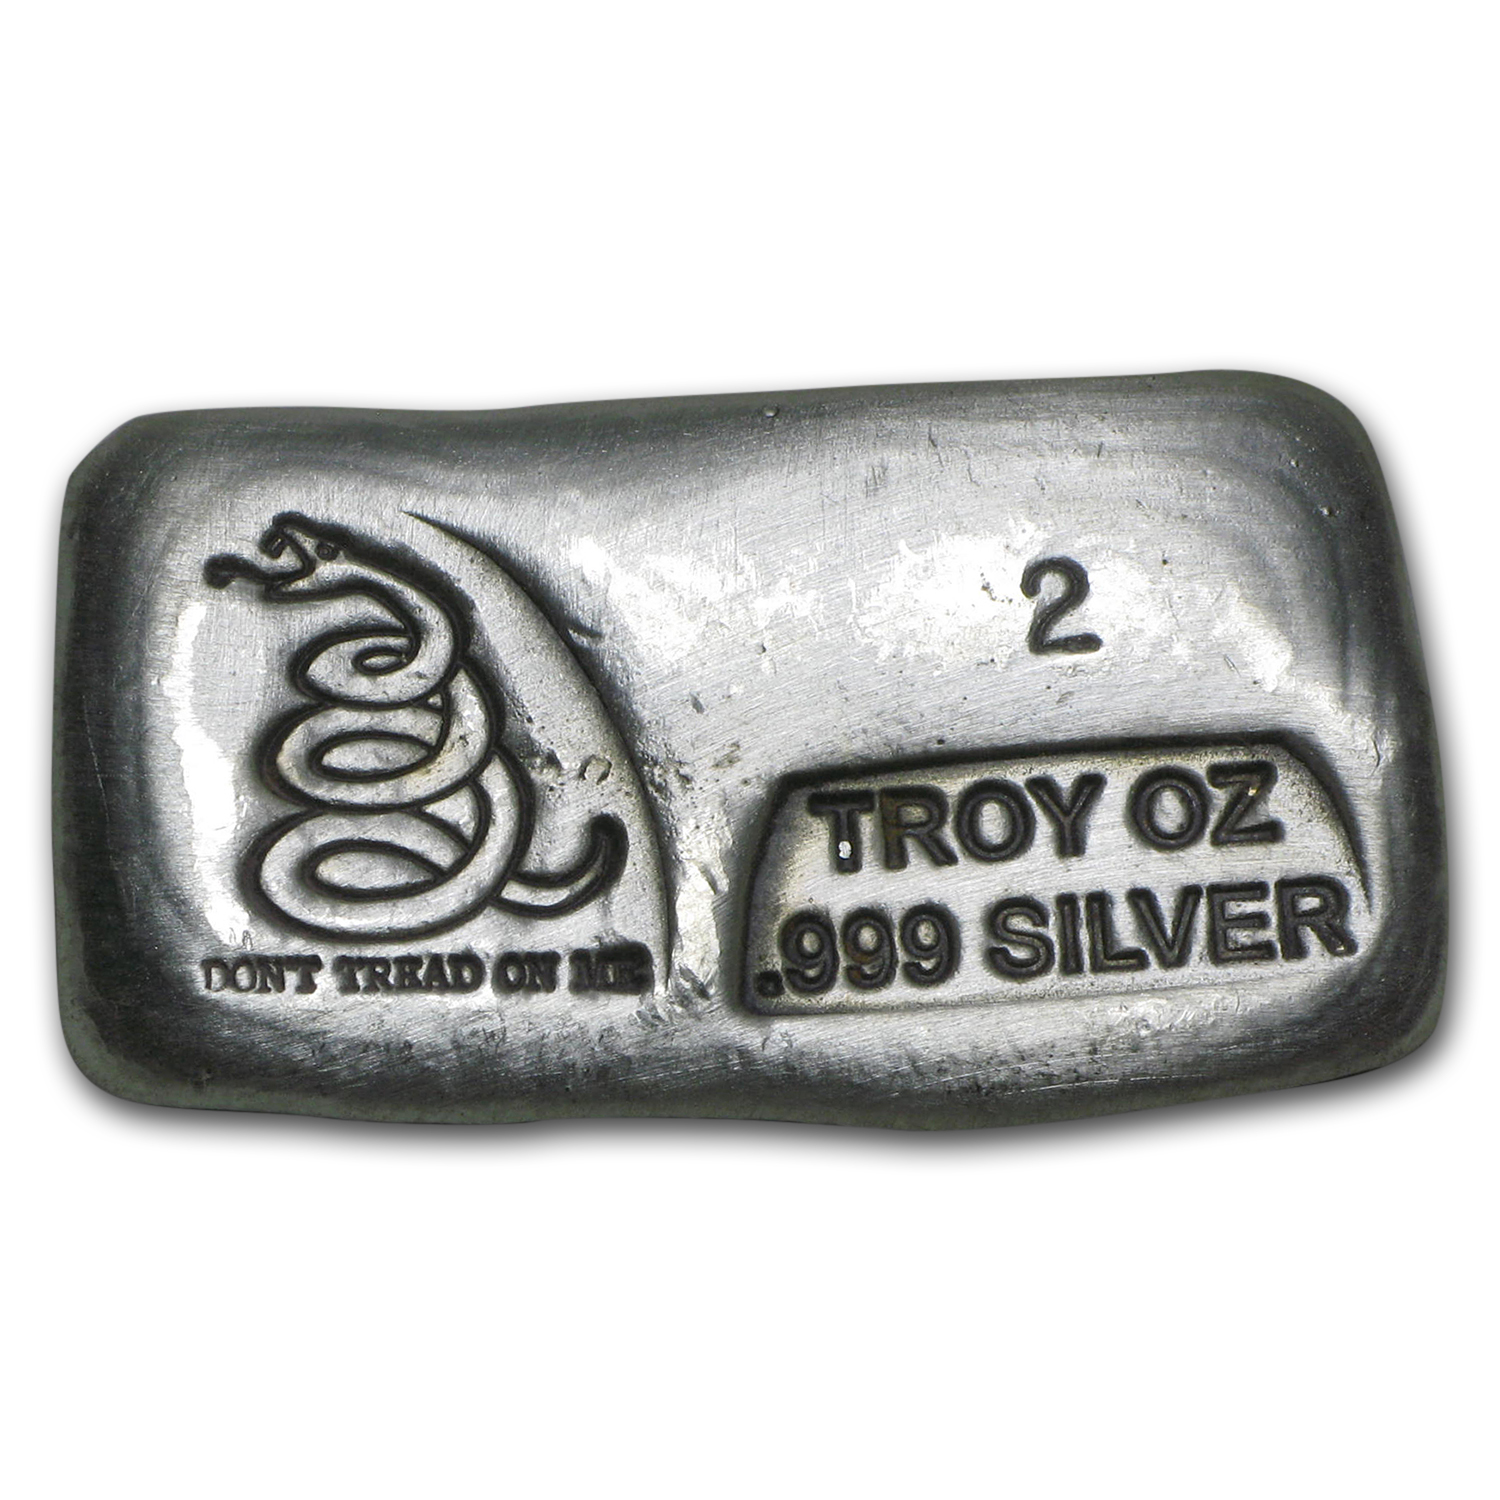 1 oz-10 oz Silver Bars - Don't Tread On Me (PG&G, 55 oz total)